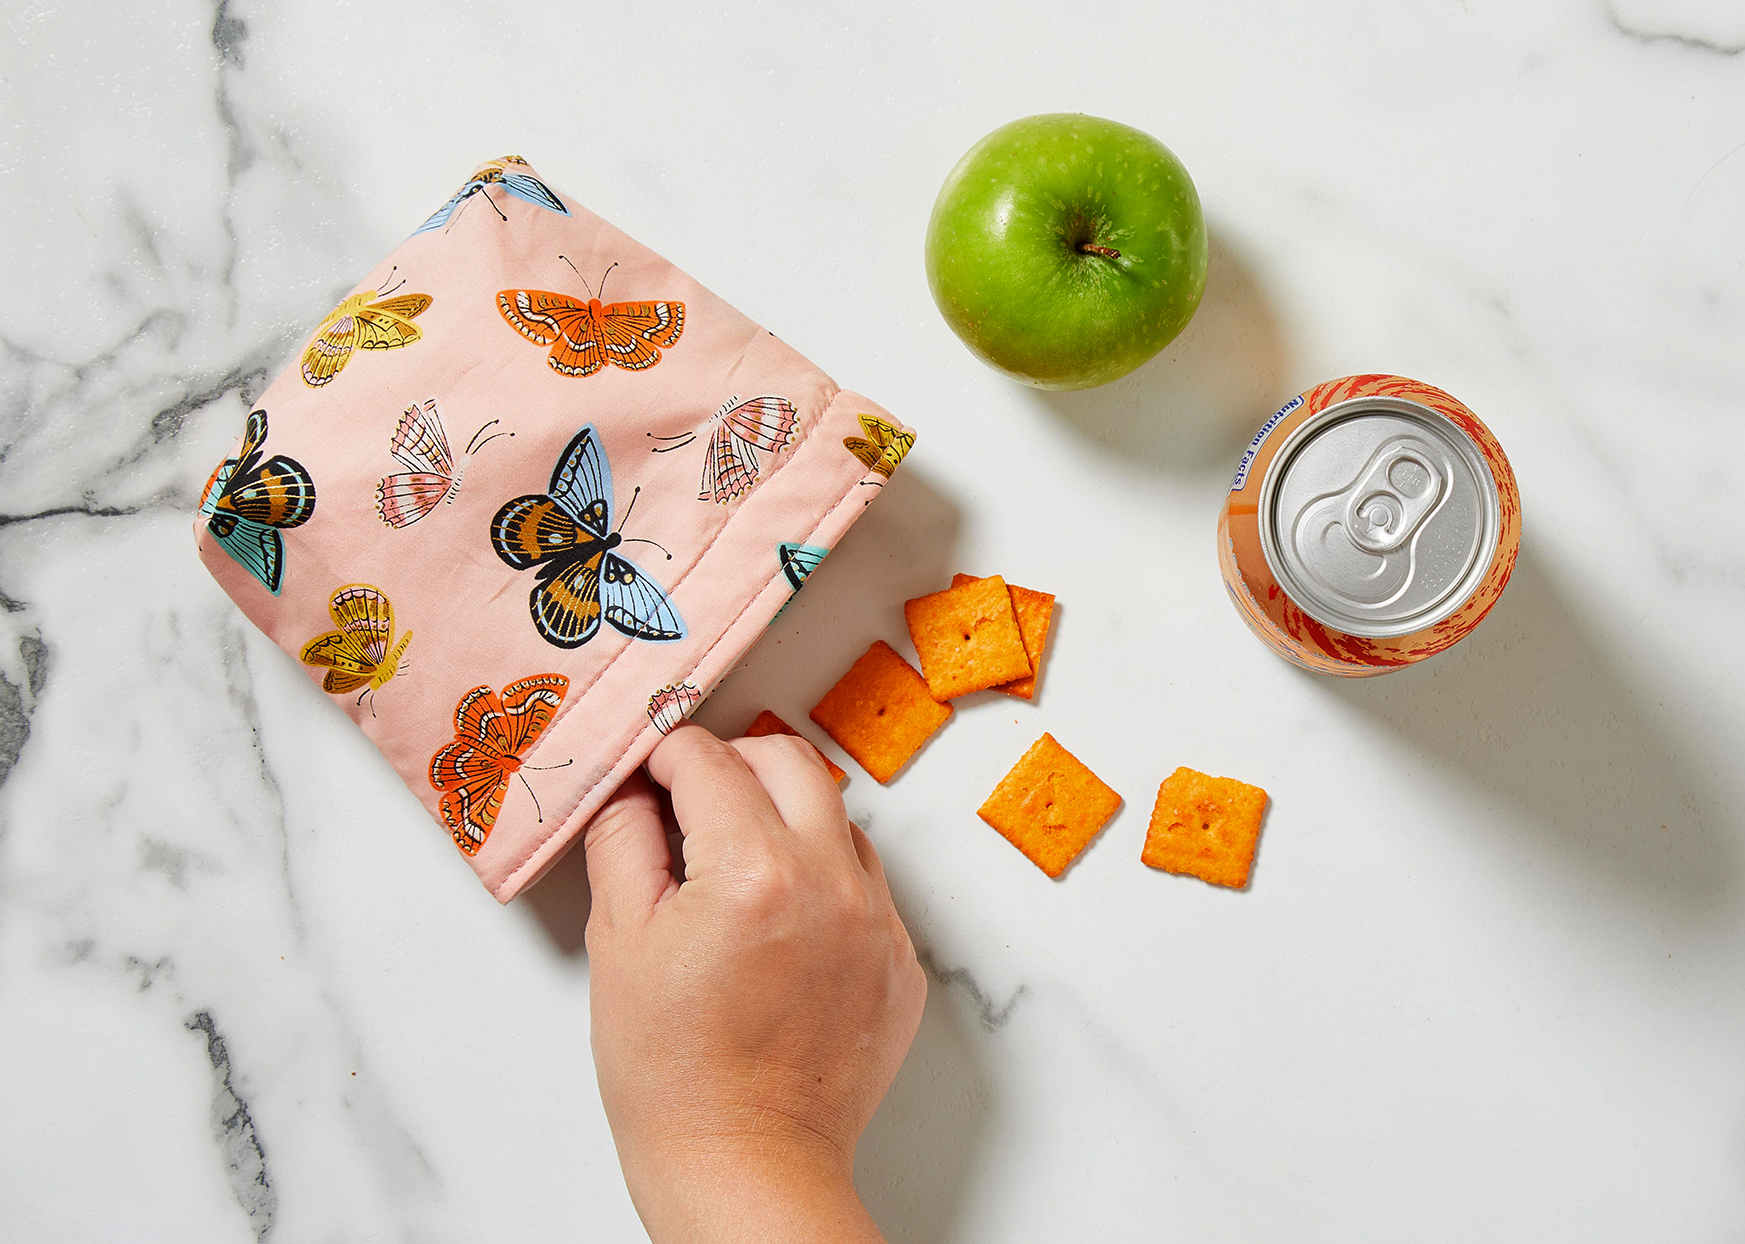 hand grabbing cracker from butterfly patterned snack pouch